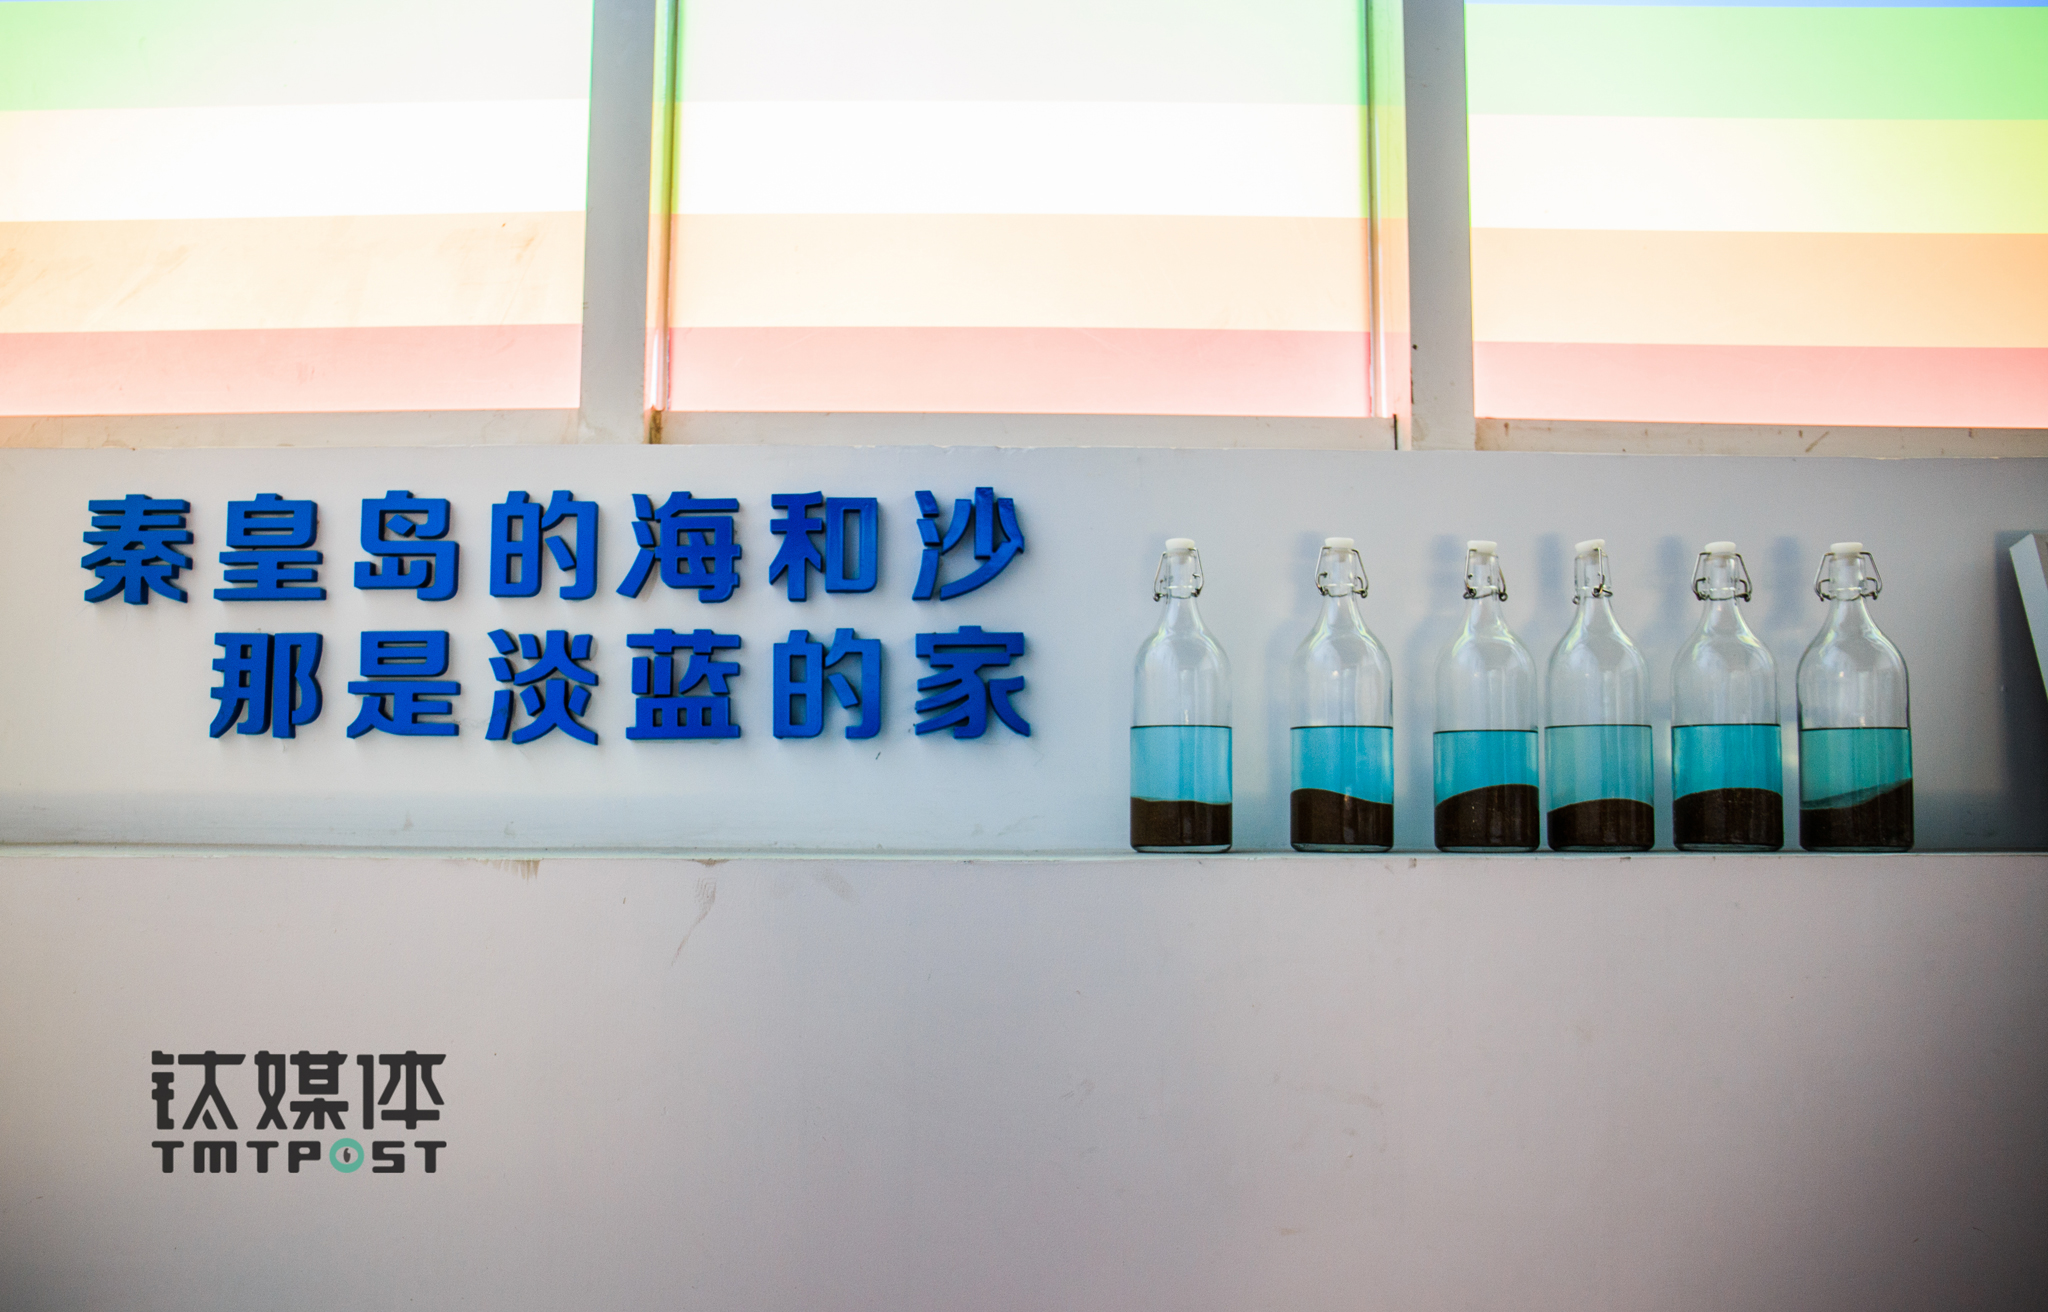 """There are bottles filled with sea water and sands from Geng Le's hometown Qinhuangdao sitting by the window of the office. Through out these years, Geng Le has been portrayed and labeled as """"the person who drives social change"""", """"the entrepreneur who met with premier Li Keqiang"""", """"social contributor"""" etc. """"Besides all those so called glamourous and heroic sides, we also have all those feelings that other people have. We have our emotional and material desire. And we also suffer in our entrepreneurial journey as other companies do. I want to just rid of all the labels and break the chains on me, and just be me. I don't want to give too much thought about all the comments out there anymore. We will take the good advice, and make improvements,"""" Geng said. """"The social environment for gay people will definitely be a lot better in ten years, we believe that. What we are trying to do now is further change the public's perception on the LGBT community. In ten years people will talk more about the definition of love, diversity, acceptance and equality. That will be the new society we should be up for."""""""